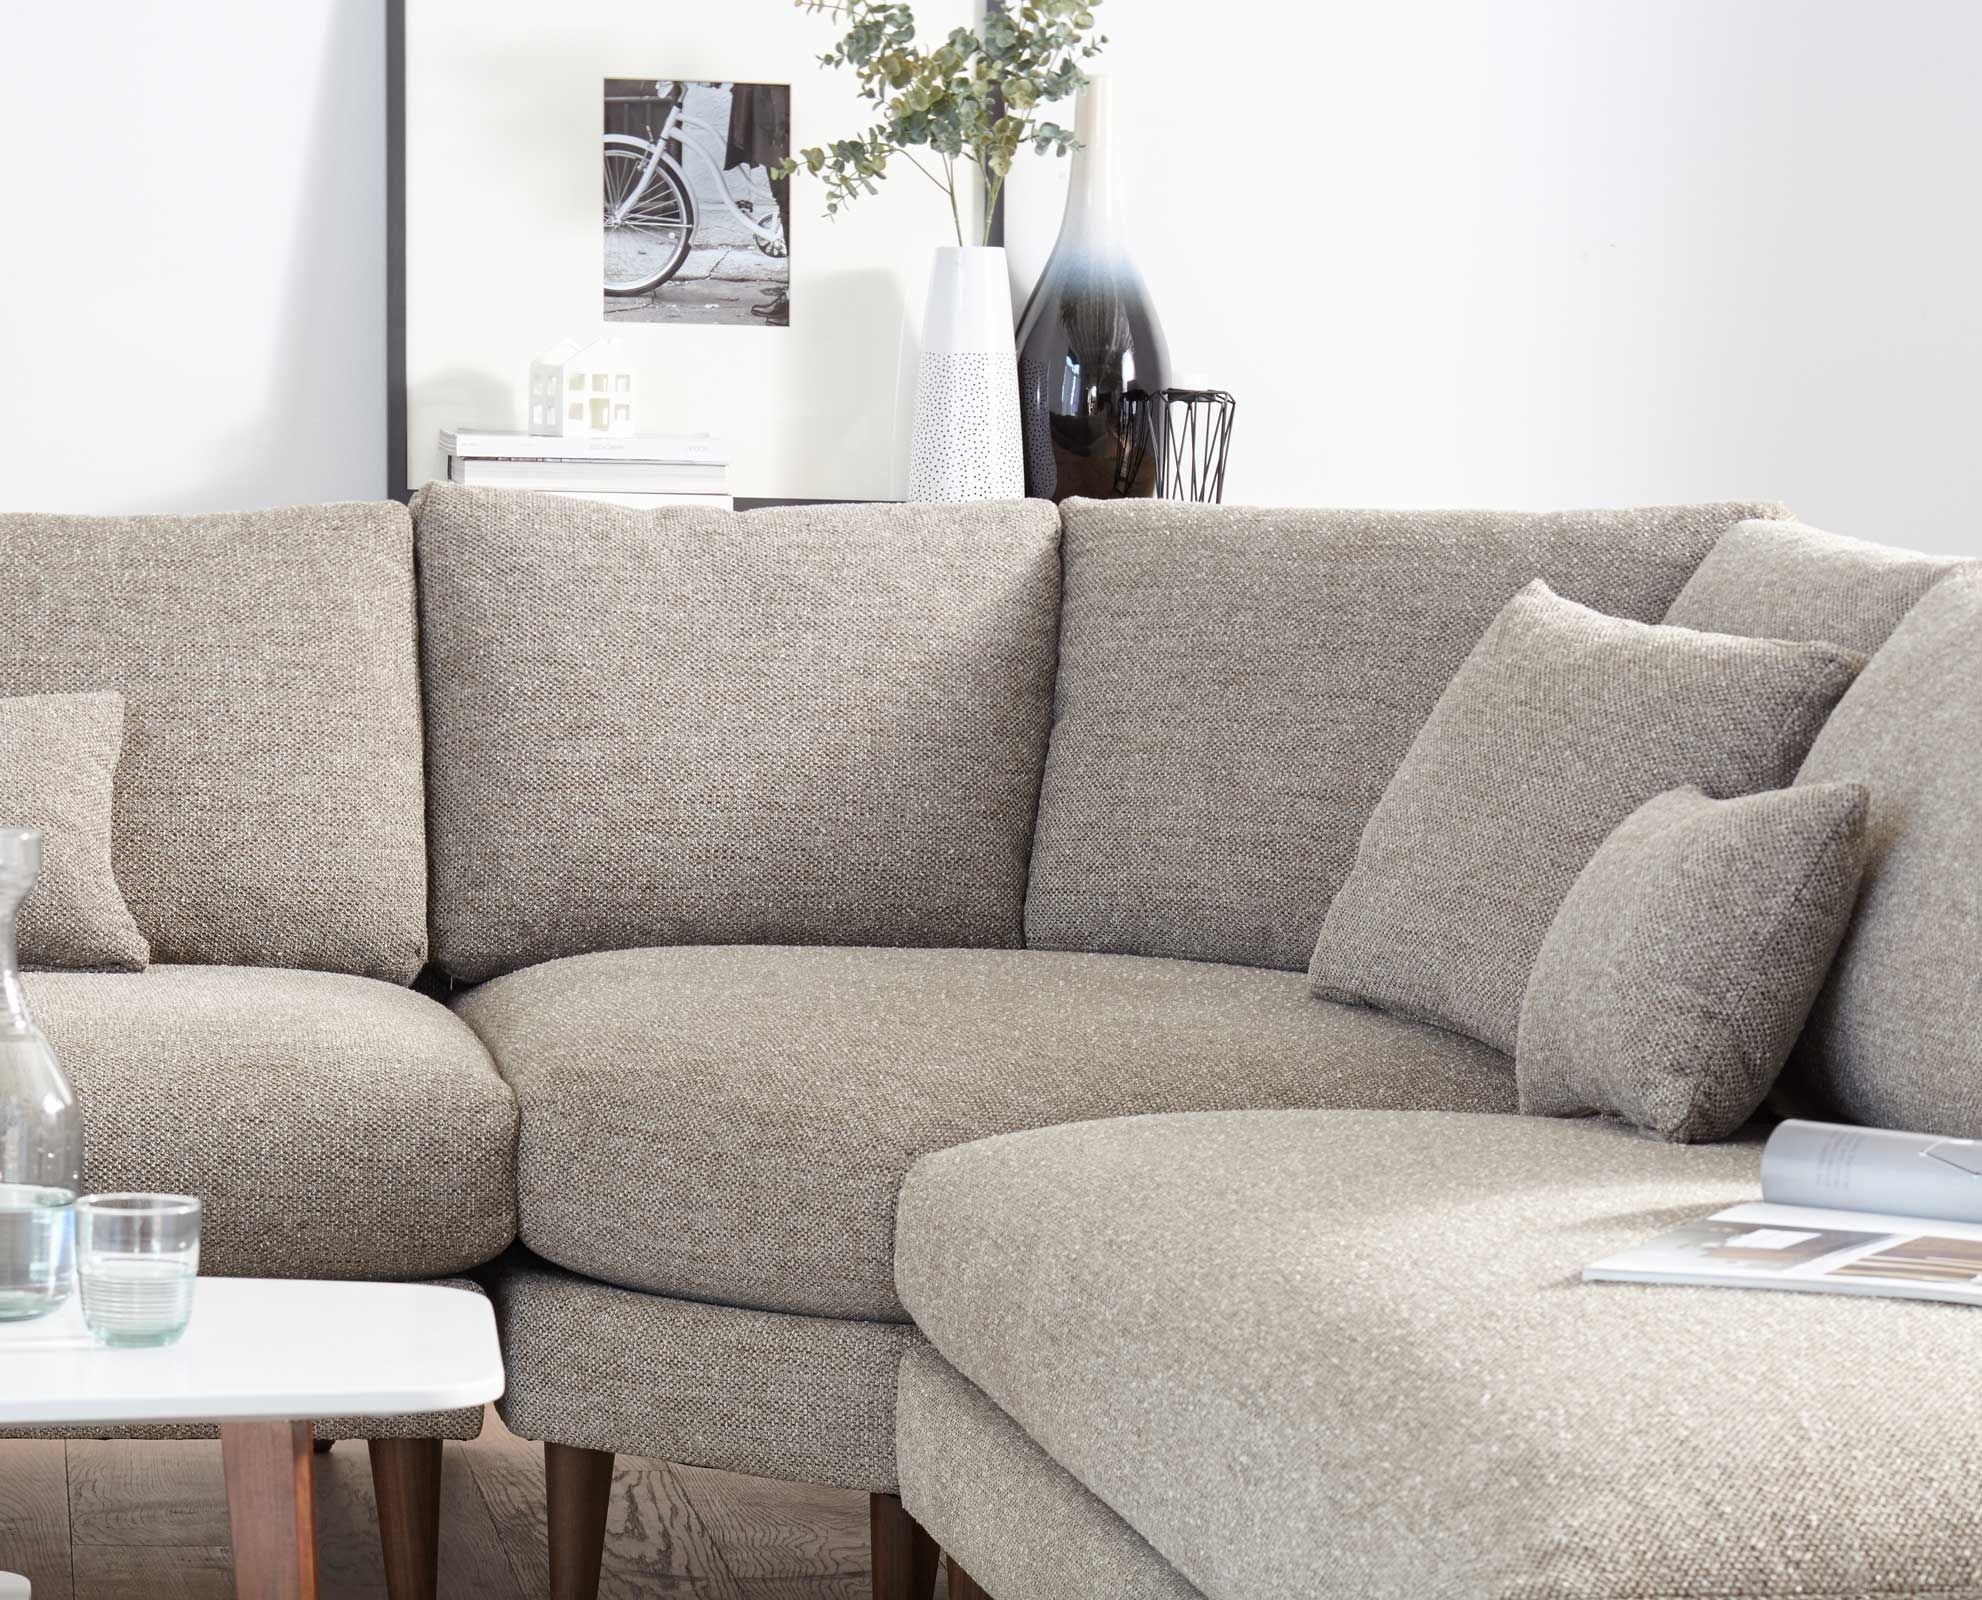 Cozy comfortable and aesthetic family room chairs fitting room app - The Grand Hugo Sectional From Scandinavian Designs Is A Great Value And A Perfect Fit For